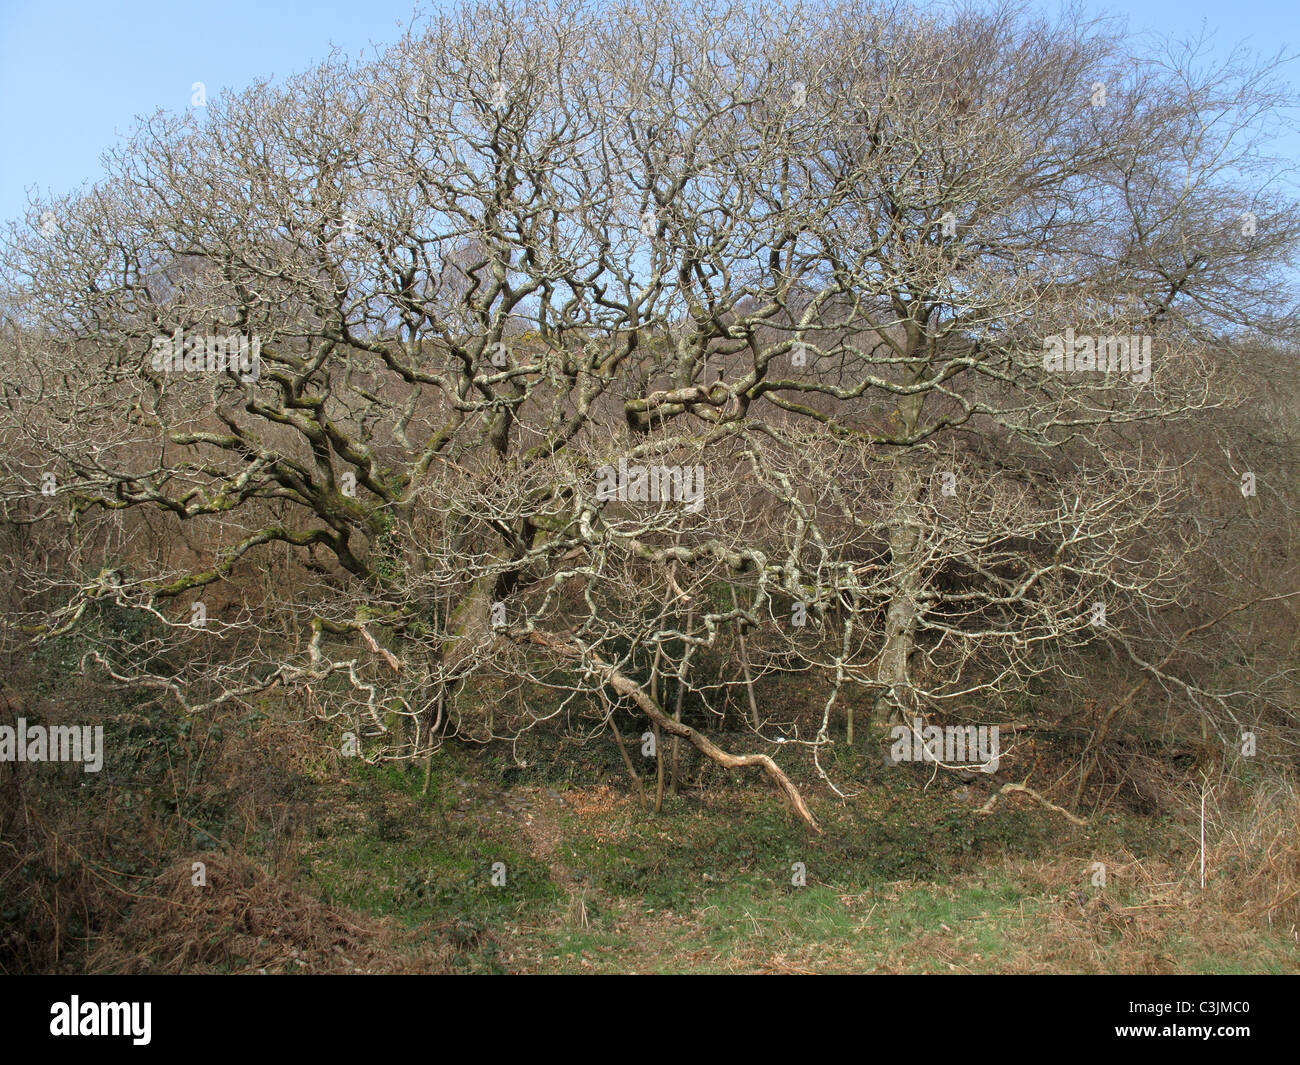 European oak (Quercus robur) leafless old tree with lichen covered branches in early spring - Stock Image